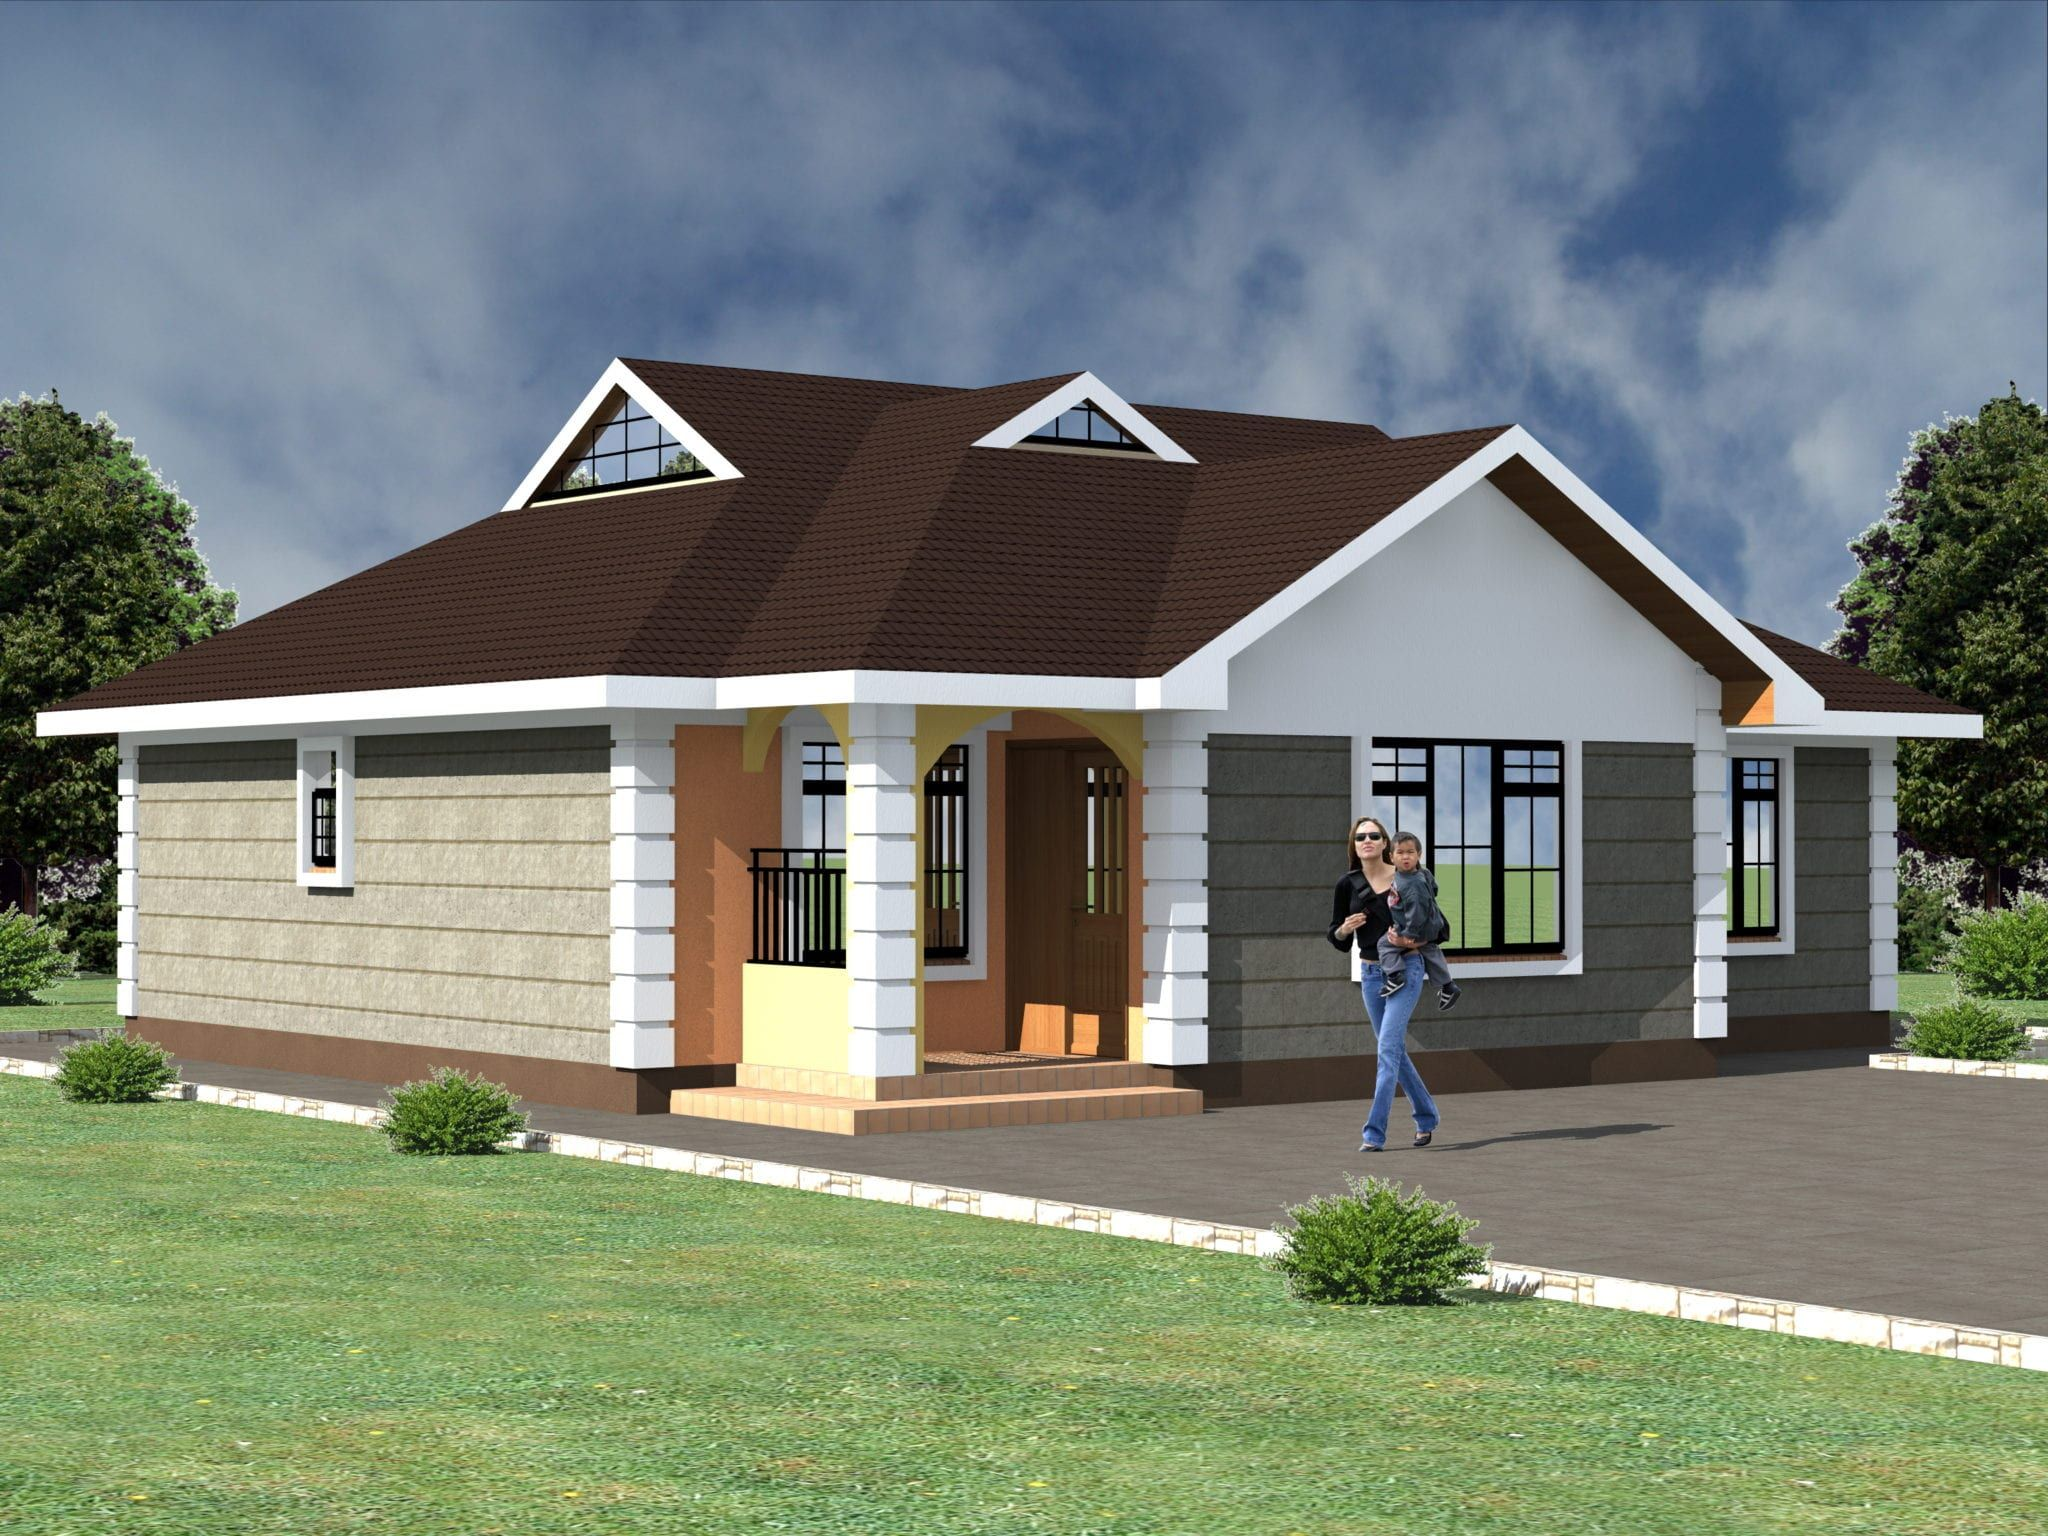 4 Bedroom Bungalow House Plans Kenya Hpd Consult Bungalow House Plans Modern Bungalow House Design House Plan Gallery